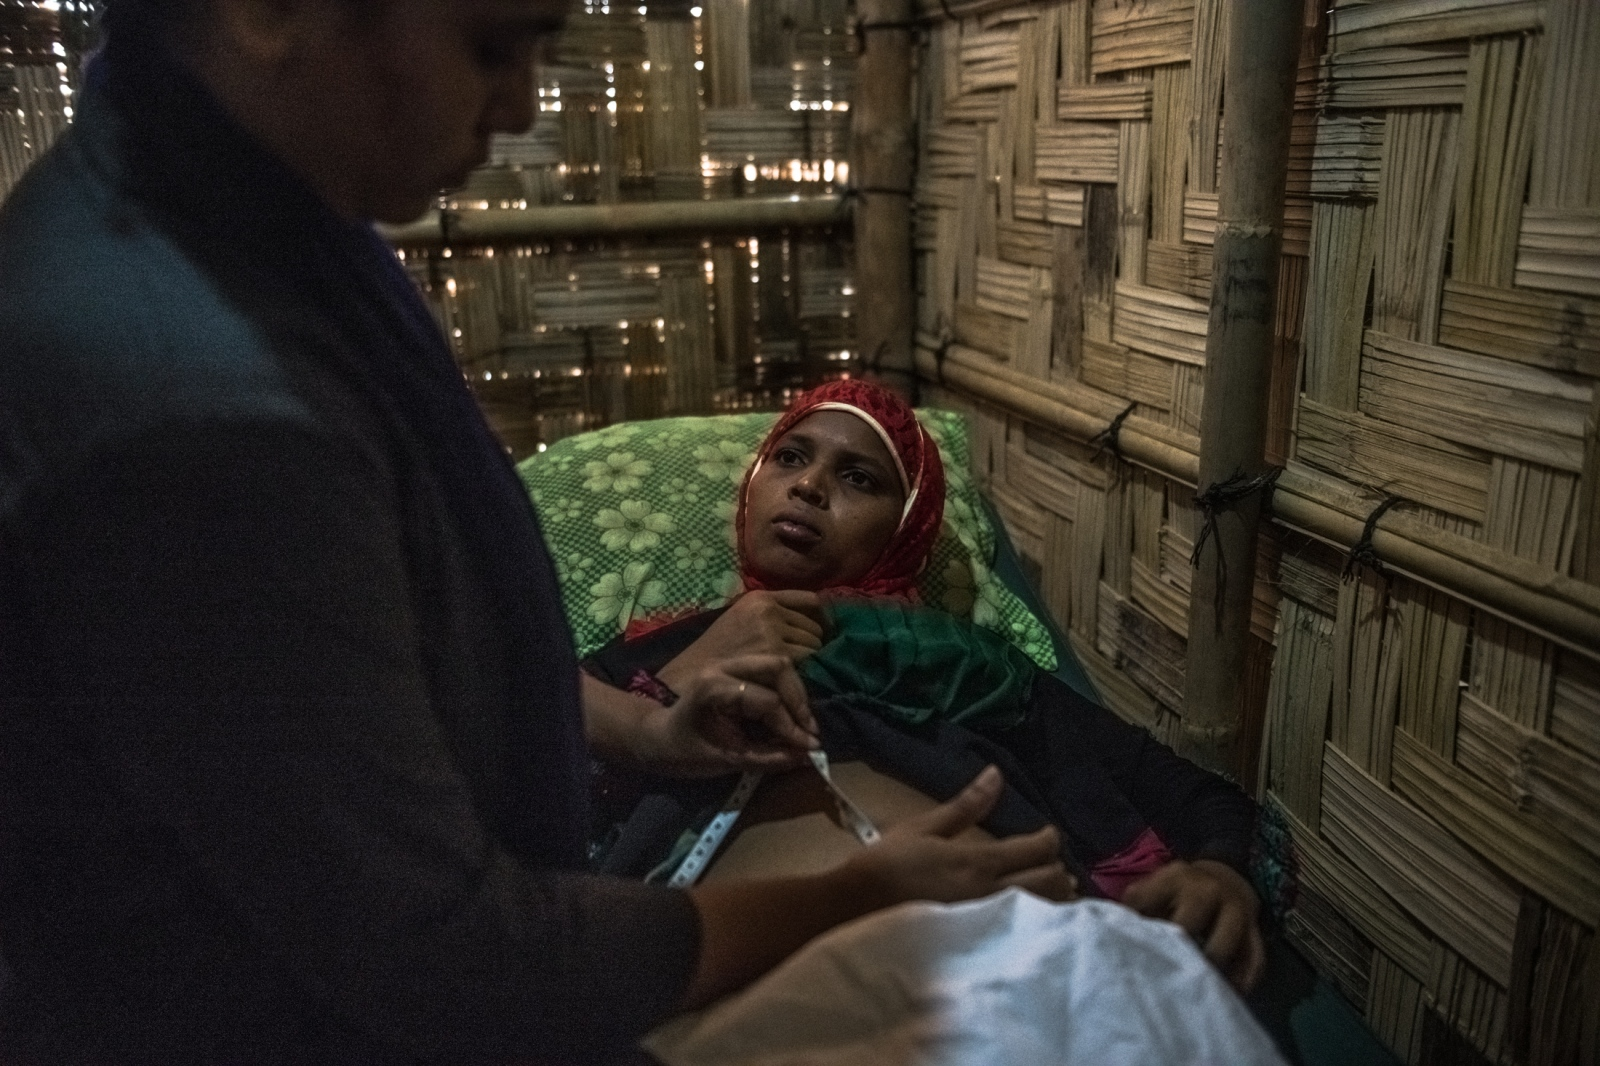 A 20-year-old woman who was about four months pregnant, and who is not a survivor of sexual violence, received a checkup at a maternity clinic in the Kutupalong refugee camp